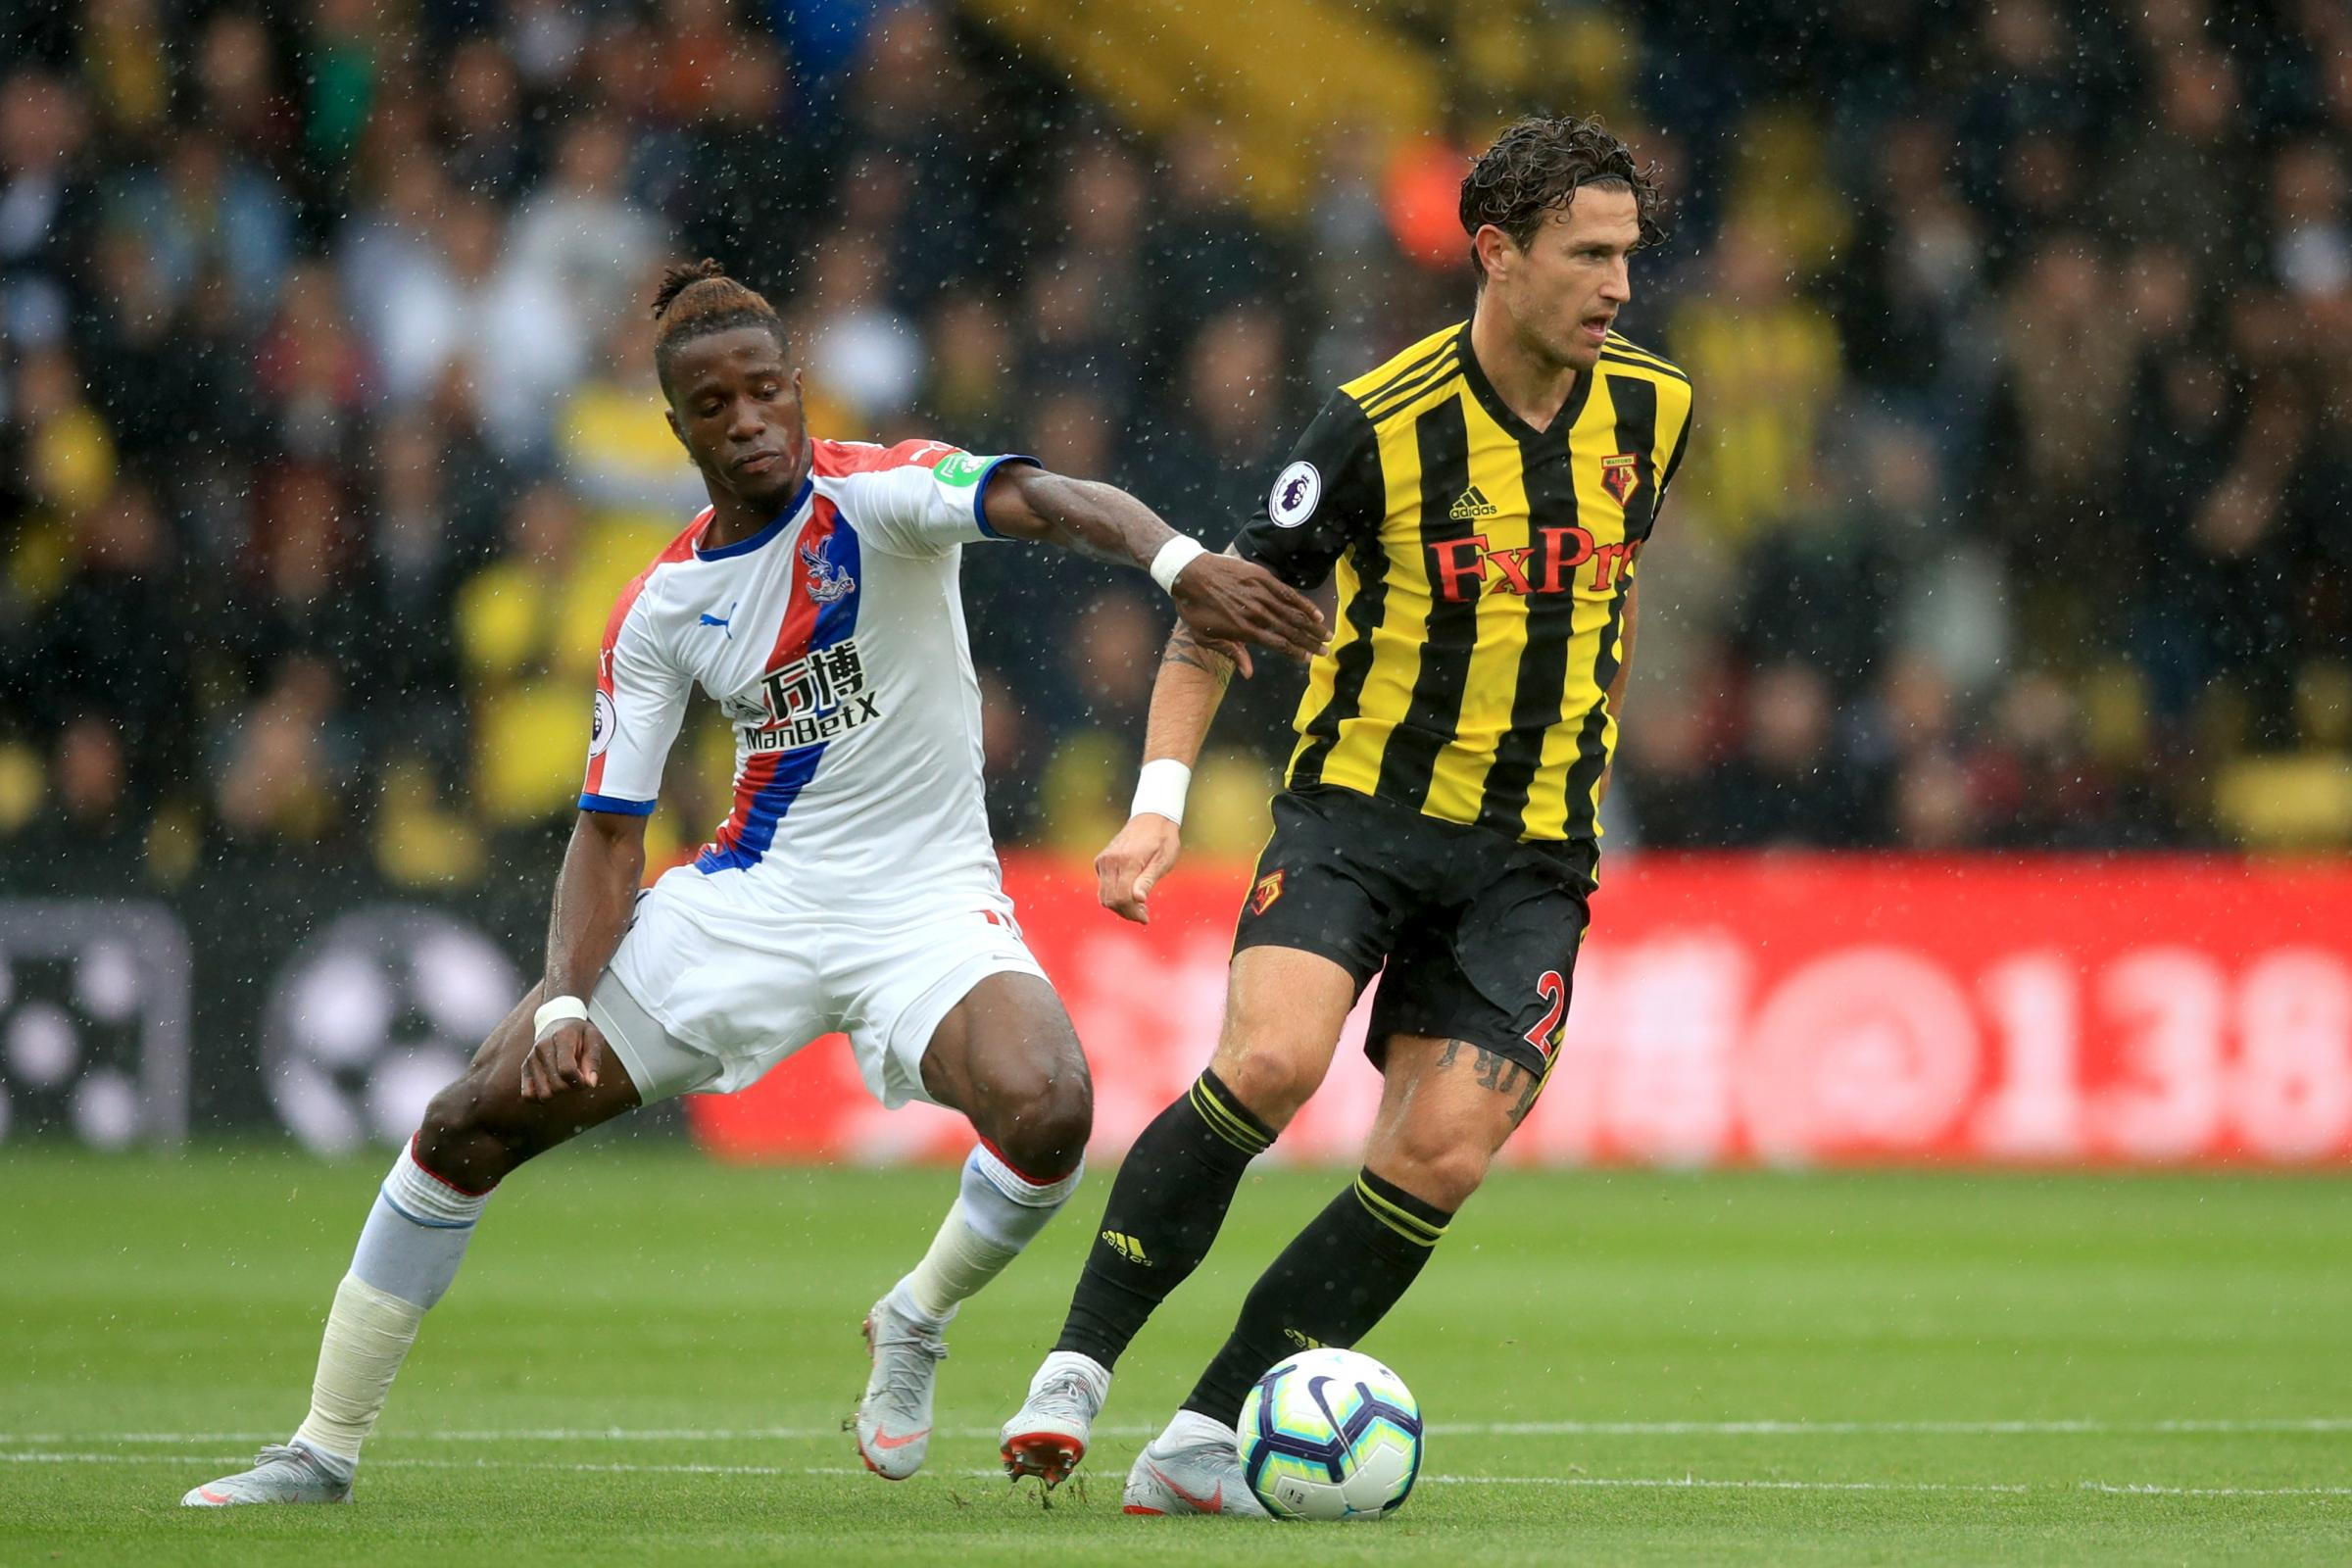 Crystal Palace's Wilfried Zaha (left) came in for some rough treatment against Watford earlier in the season